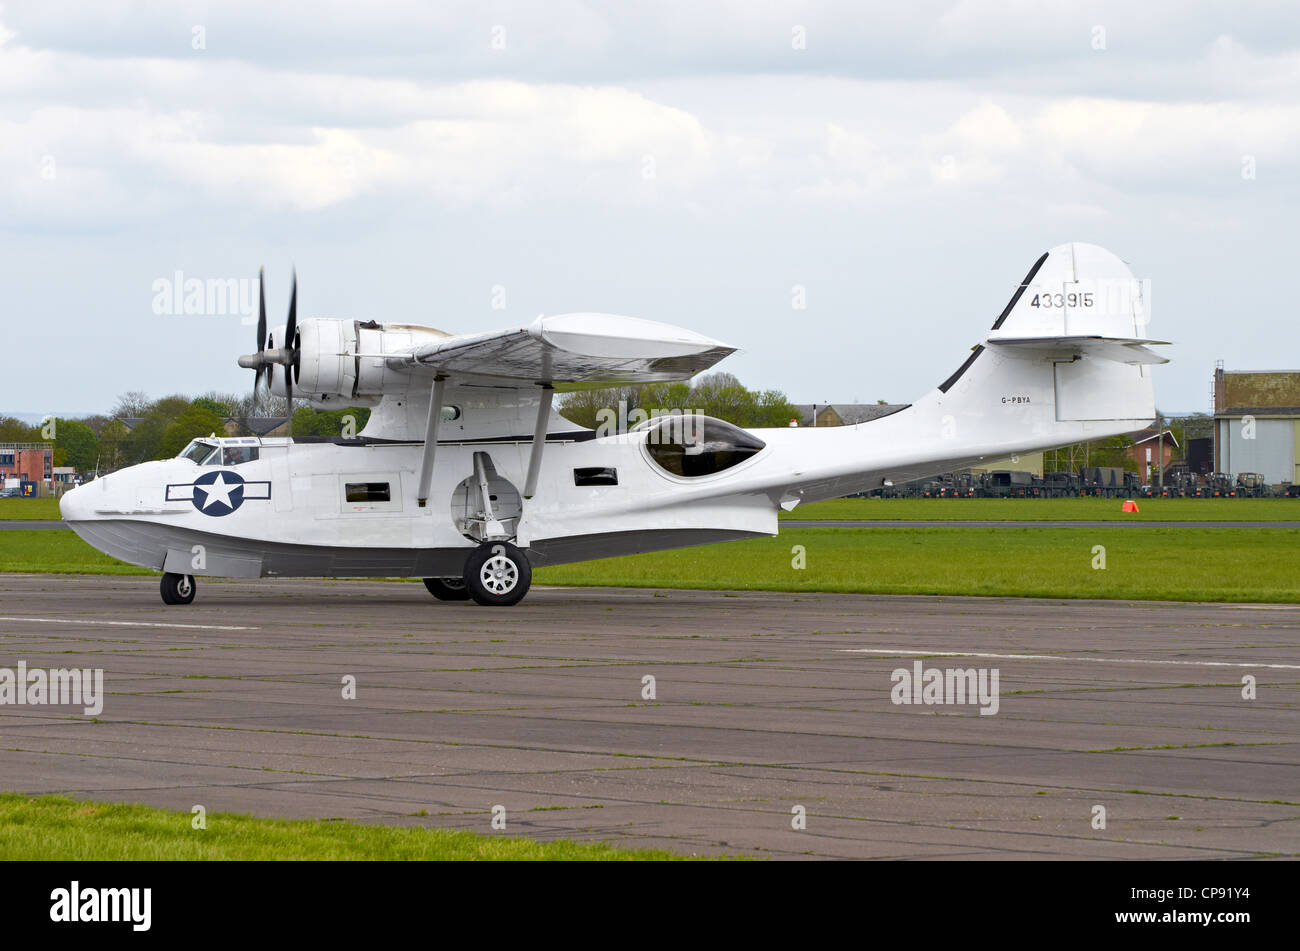 The Consolidated PBA Catalina was an American flying boat of WW2. This ione is displayed at Abingdon Airshow 2012. - Stock Image